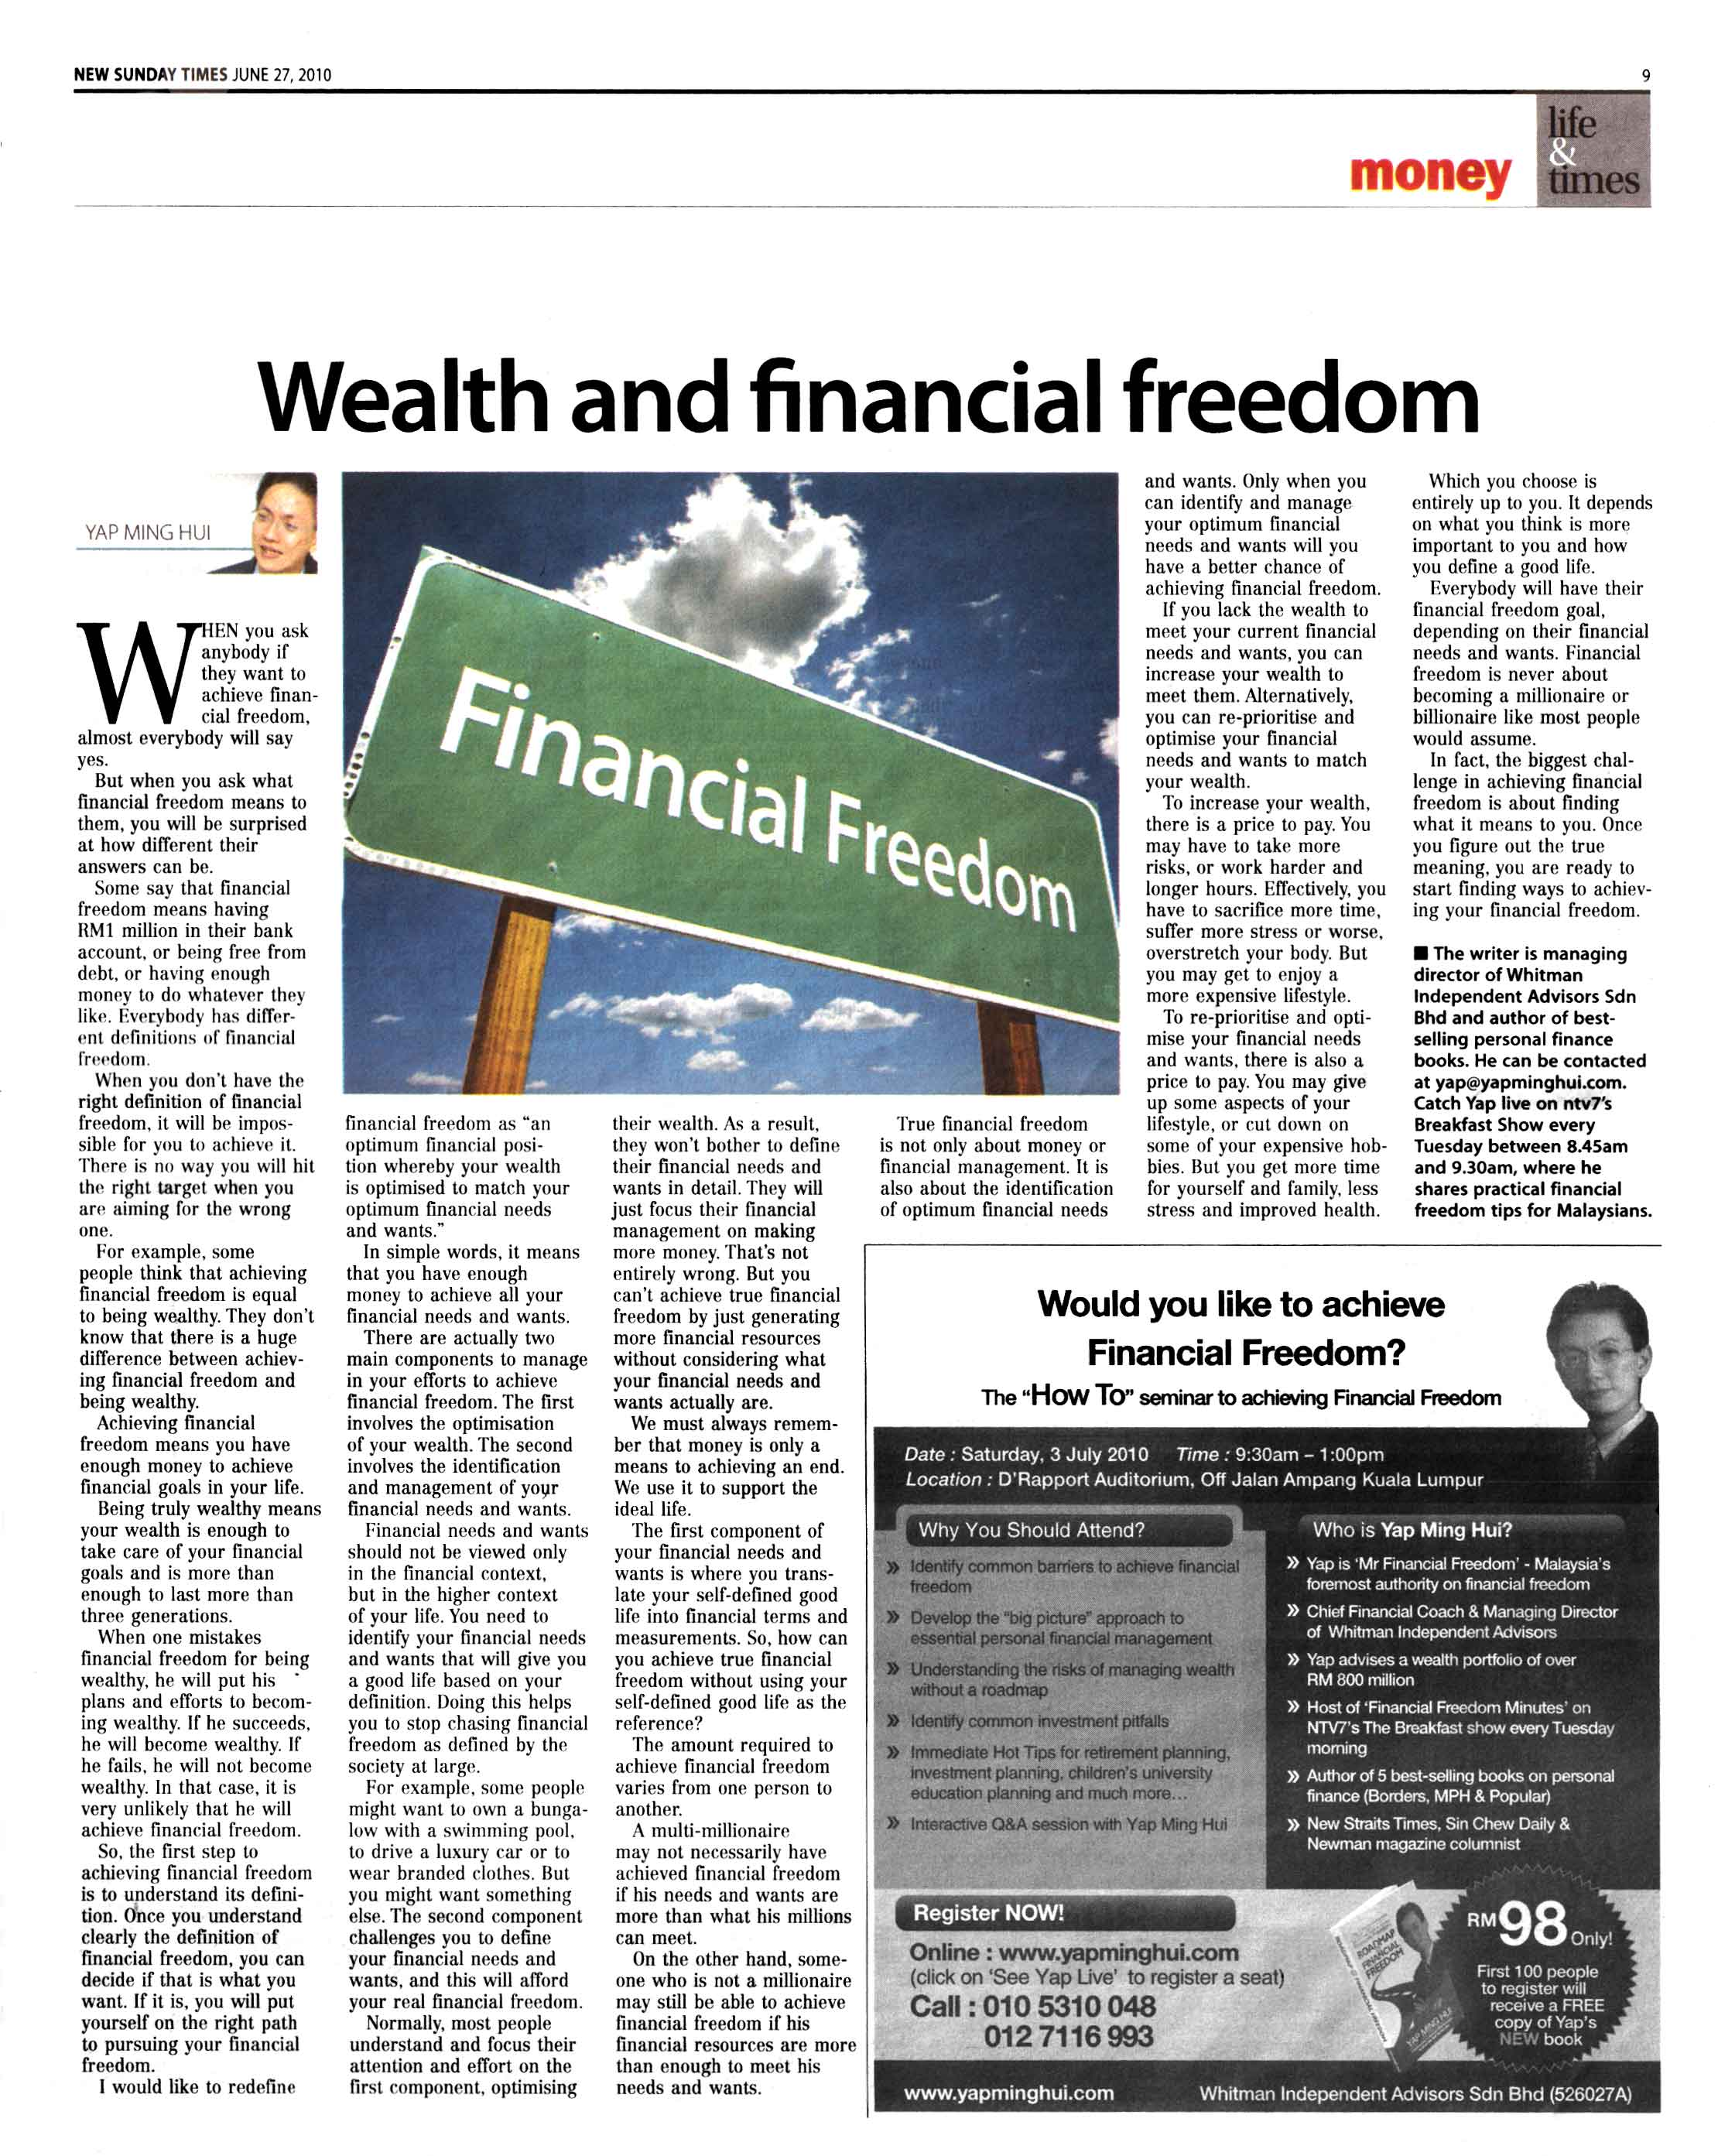 Wealth and financial freedom (New Sunday Times) - 27 Jun 2010